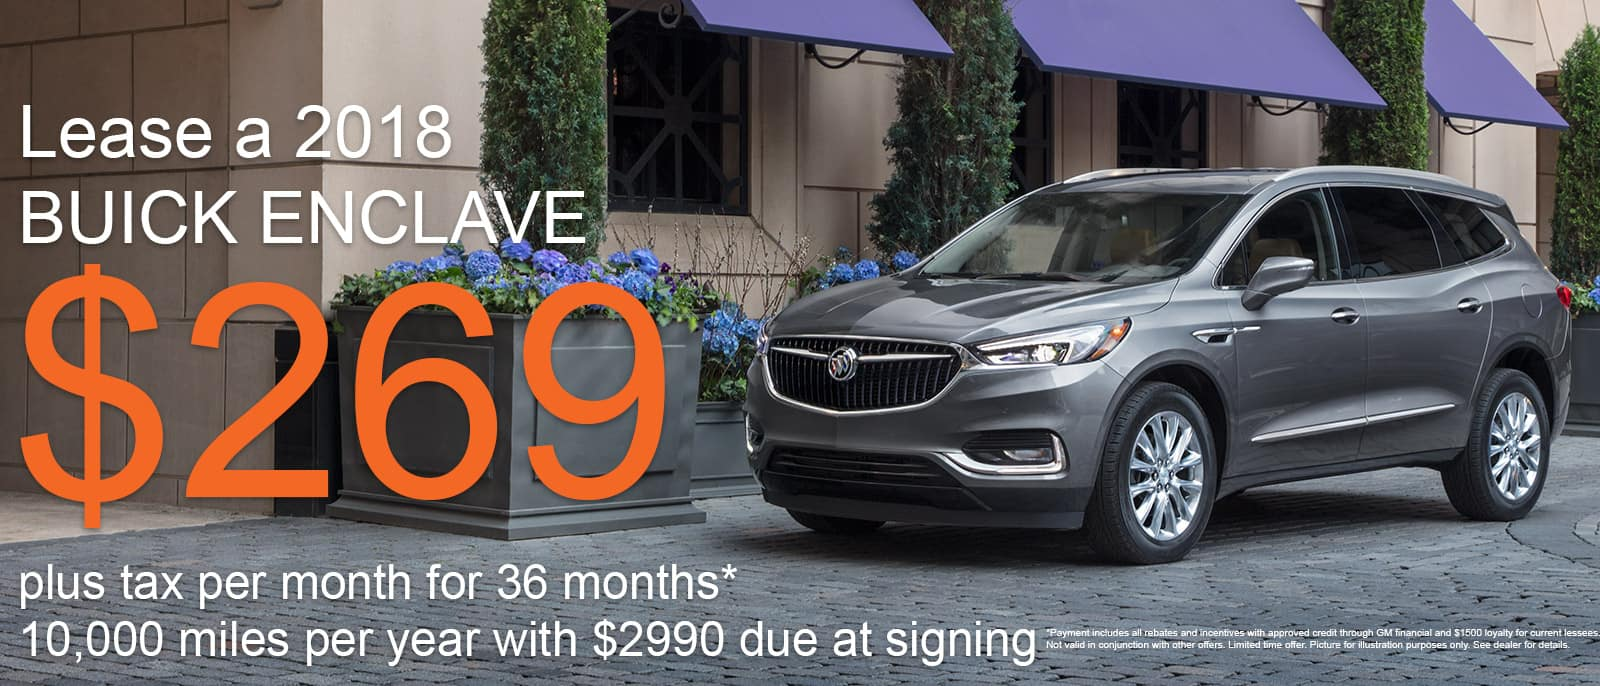 Buick Enclave June Special